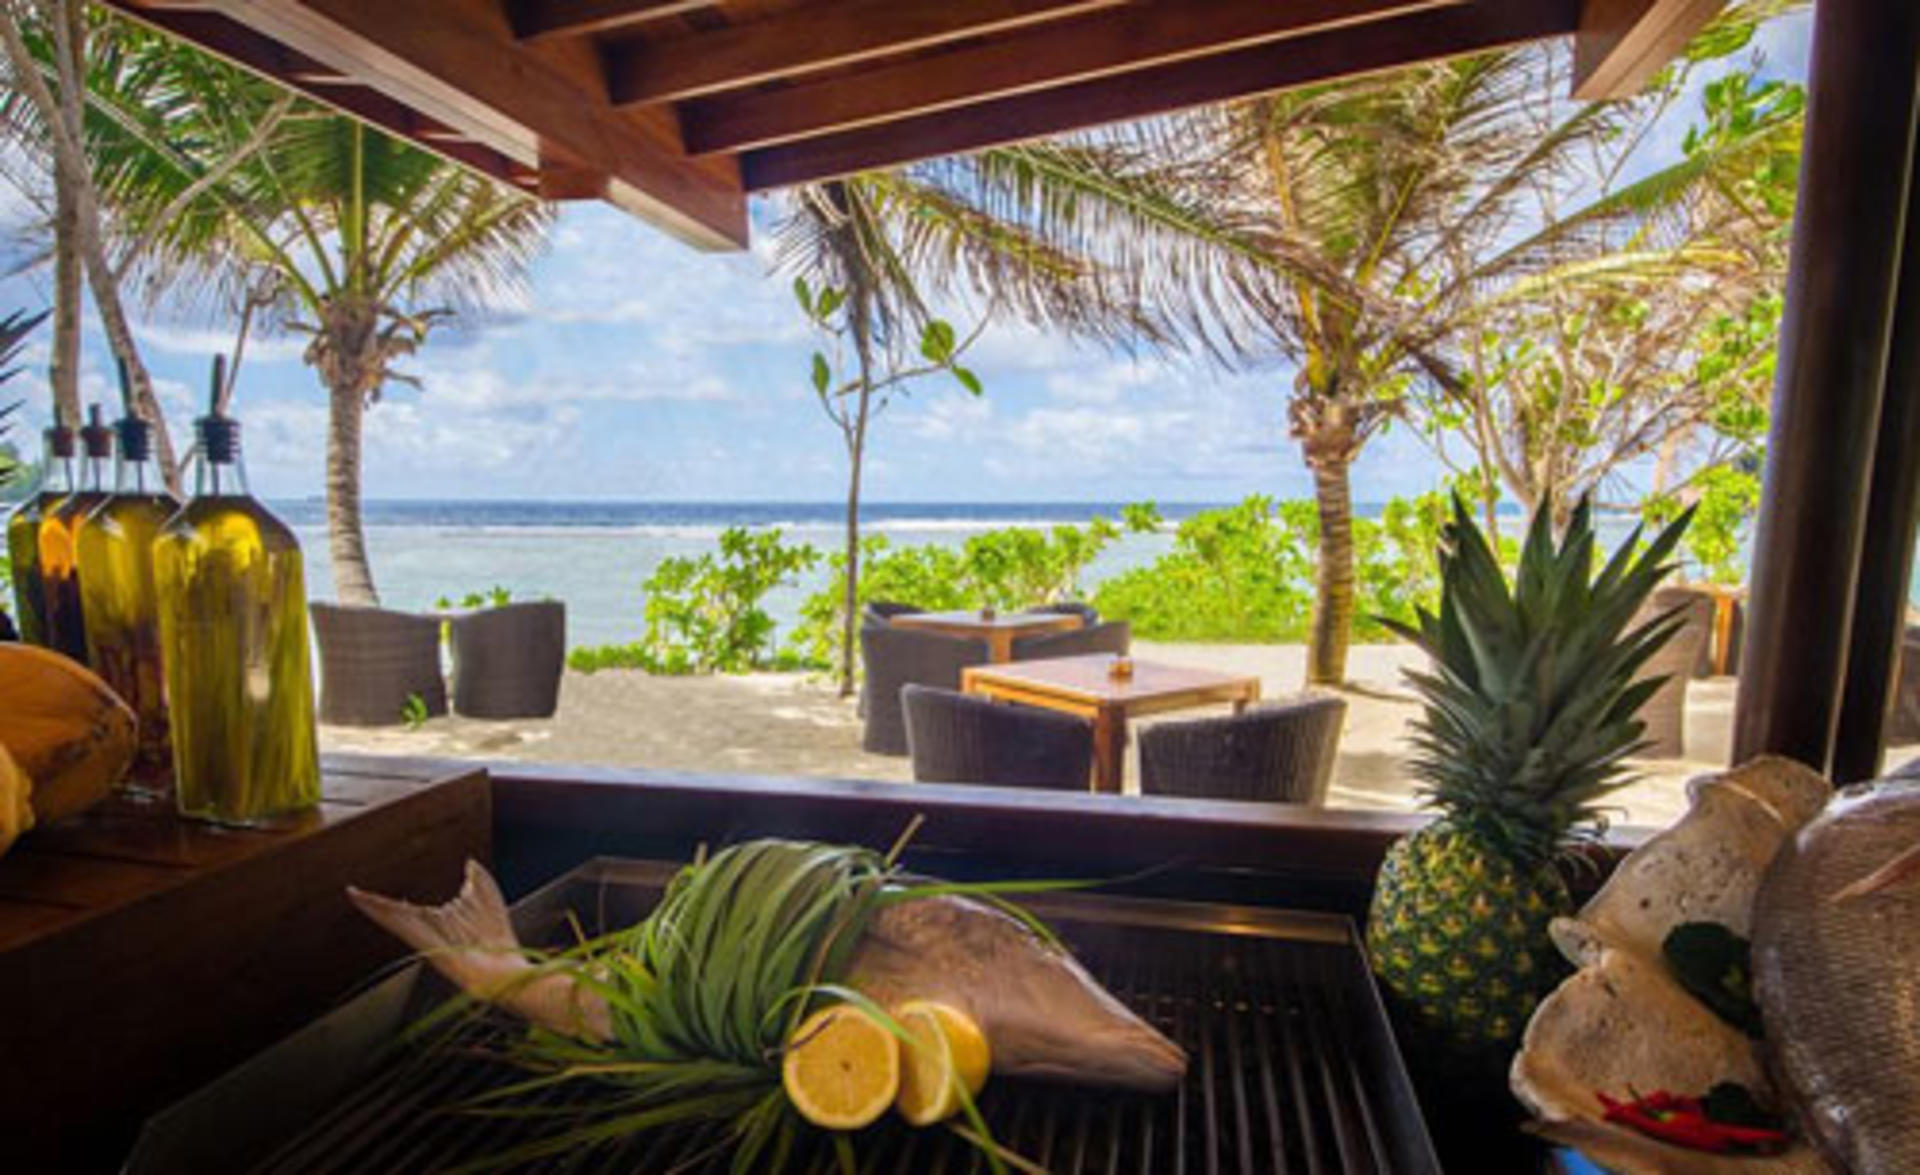 KI_Seychelles_Resort_Windsong_Beach_Restaurant